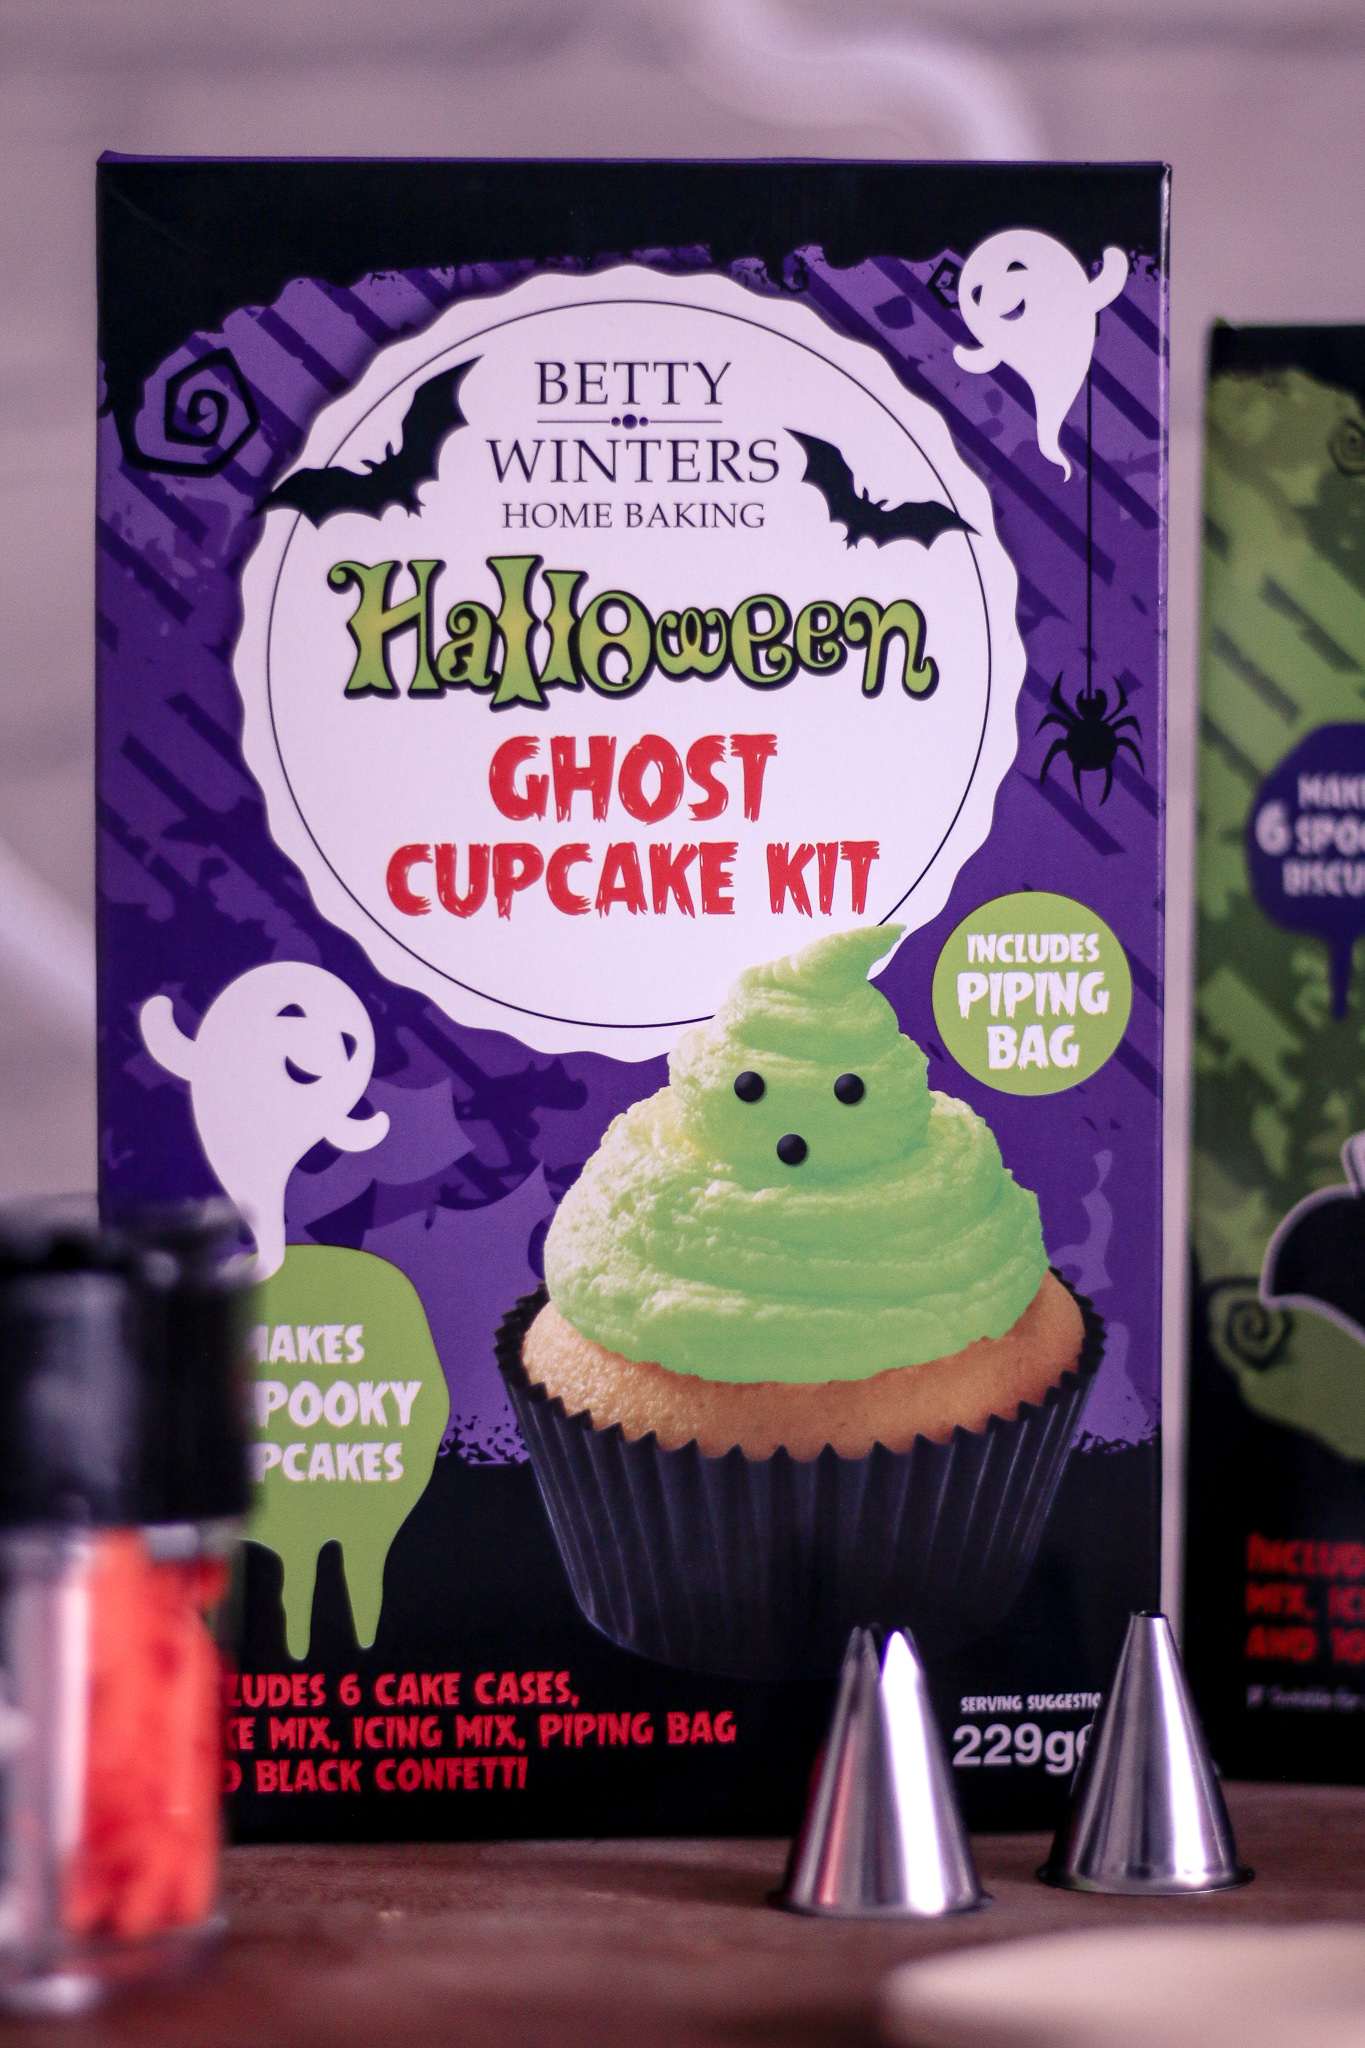 Close up photo of the Betty winters home baking Halloween Ghost Cupcakes kit